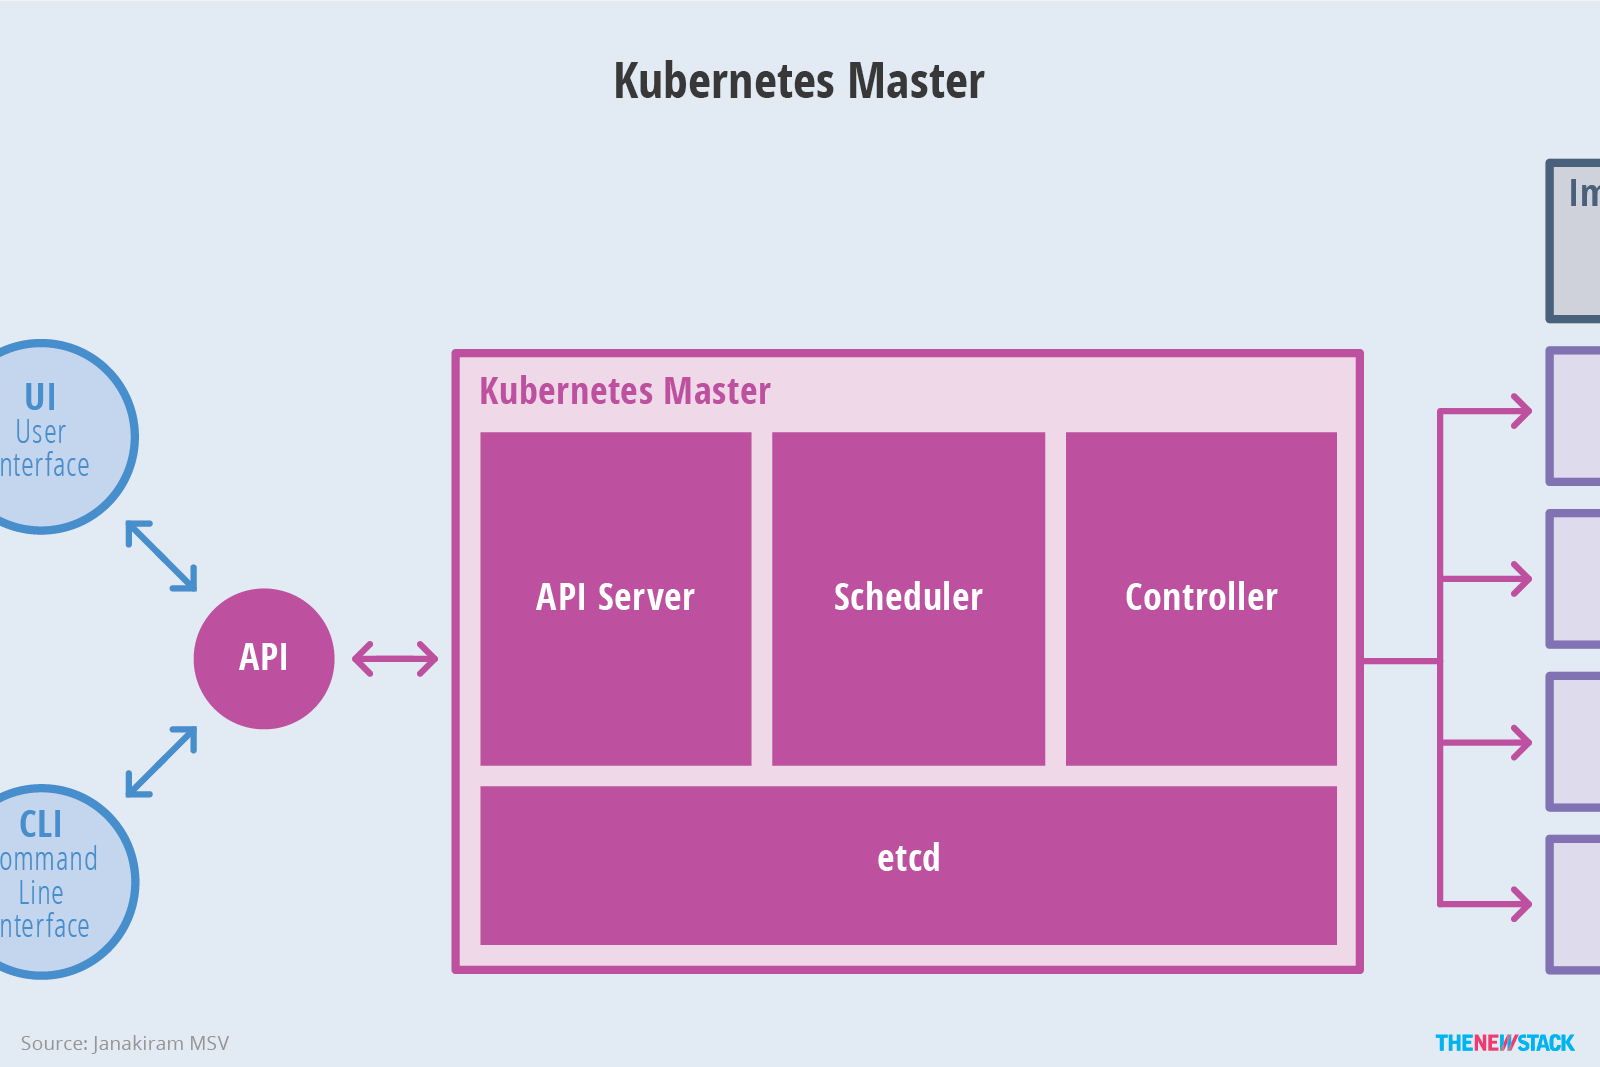 Figure 3: The master is responsible for exposing the API, scheduling the deployments and managing the overall cluster.